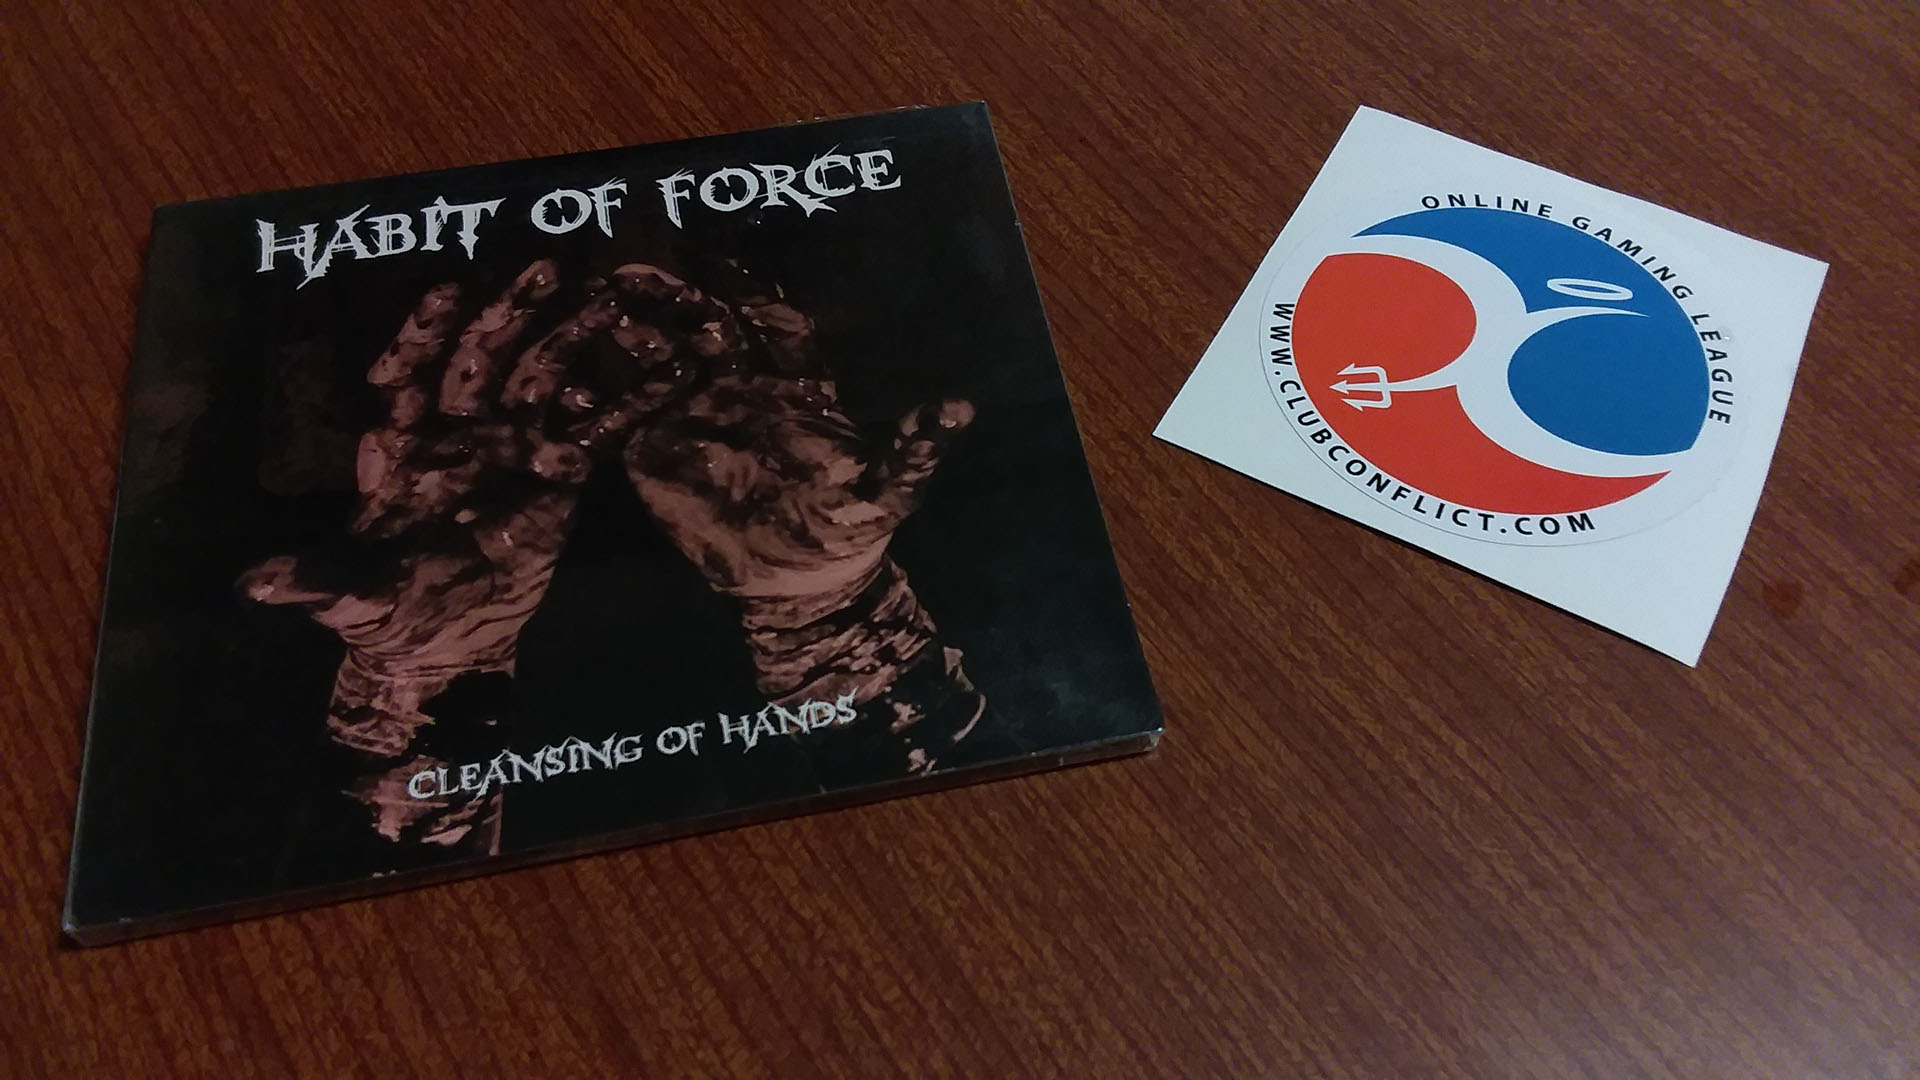 The MVP Wins a Habit of Force CD and a Club Conflict Sticker